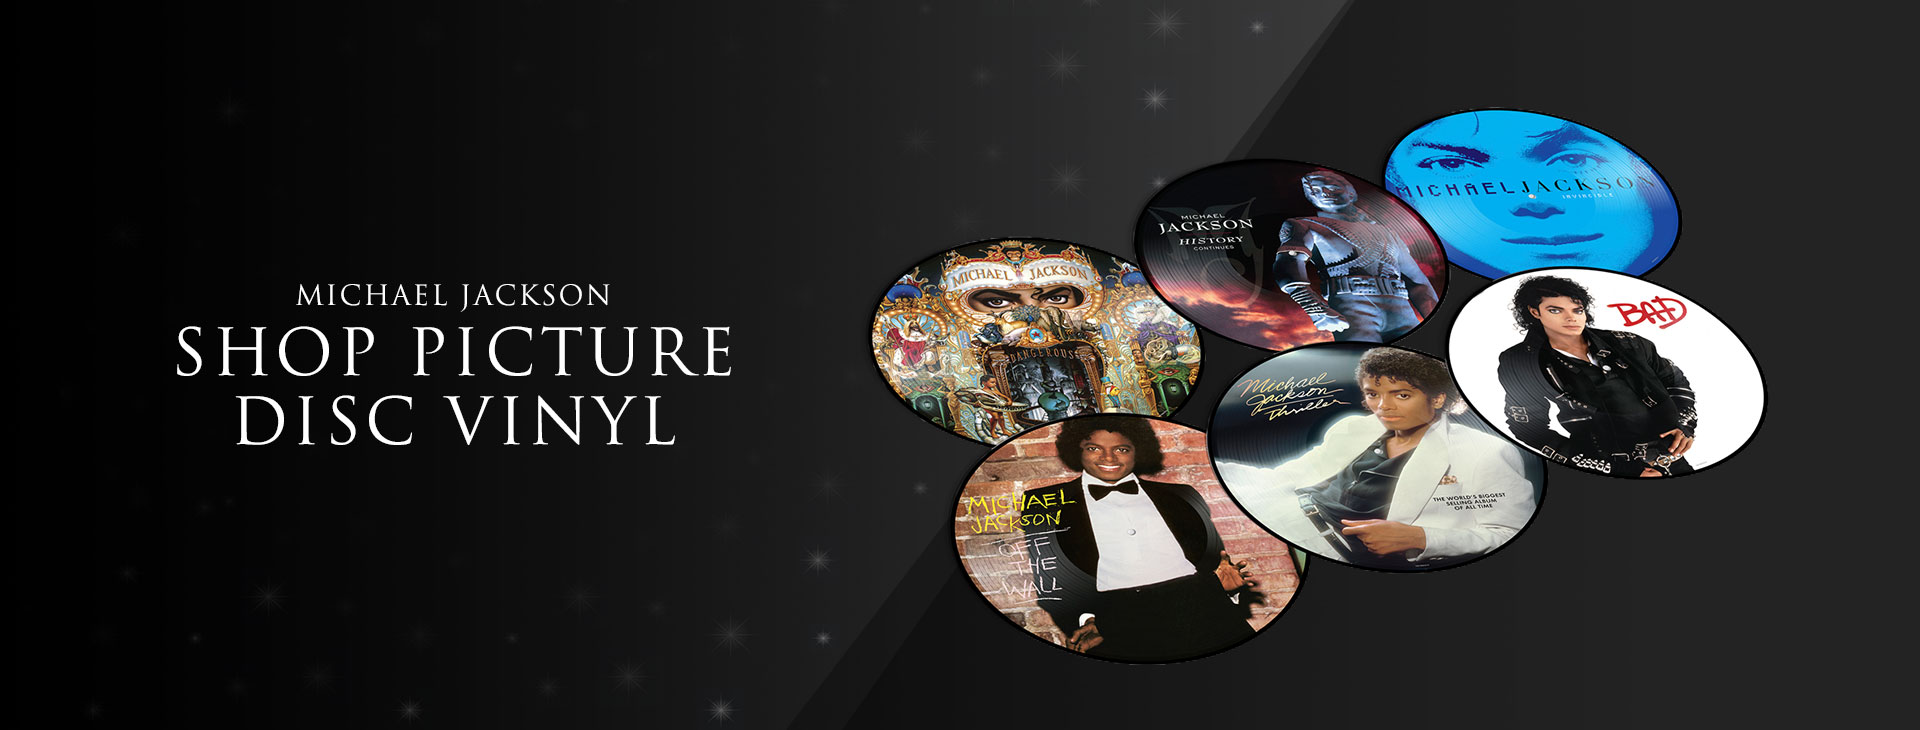 Shop Michael Jackson Picture Disc Vinyl